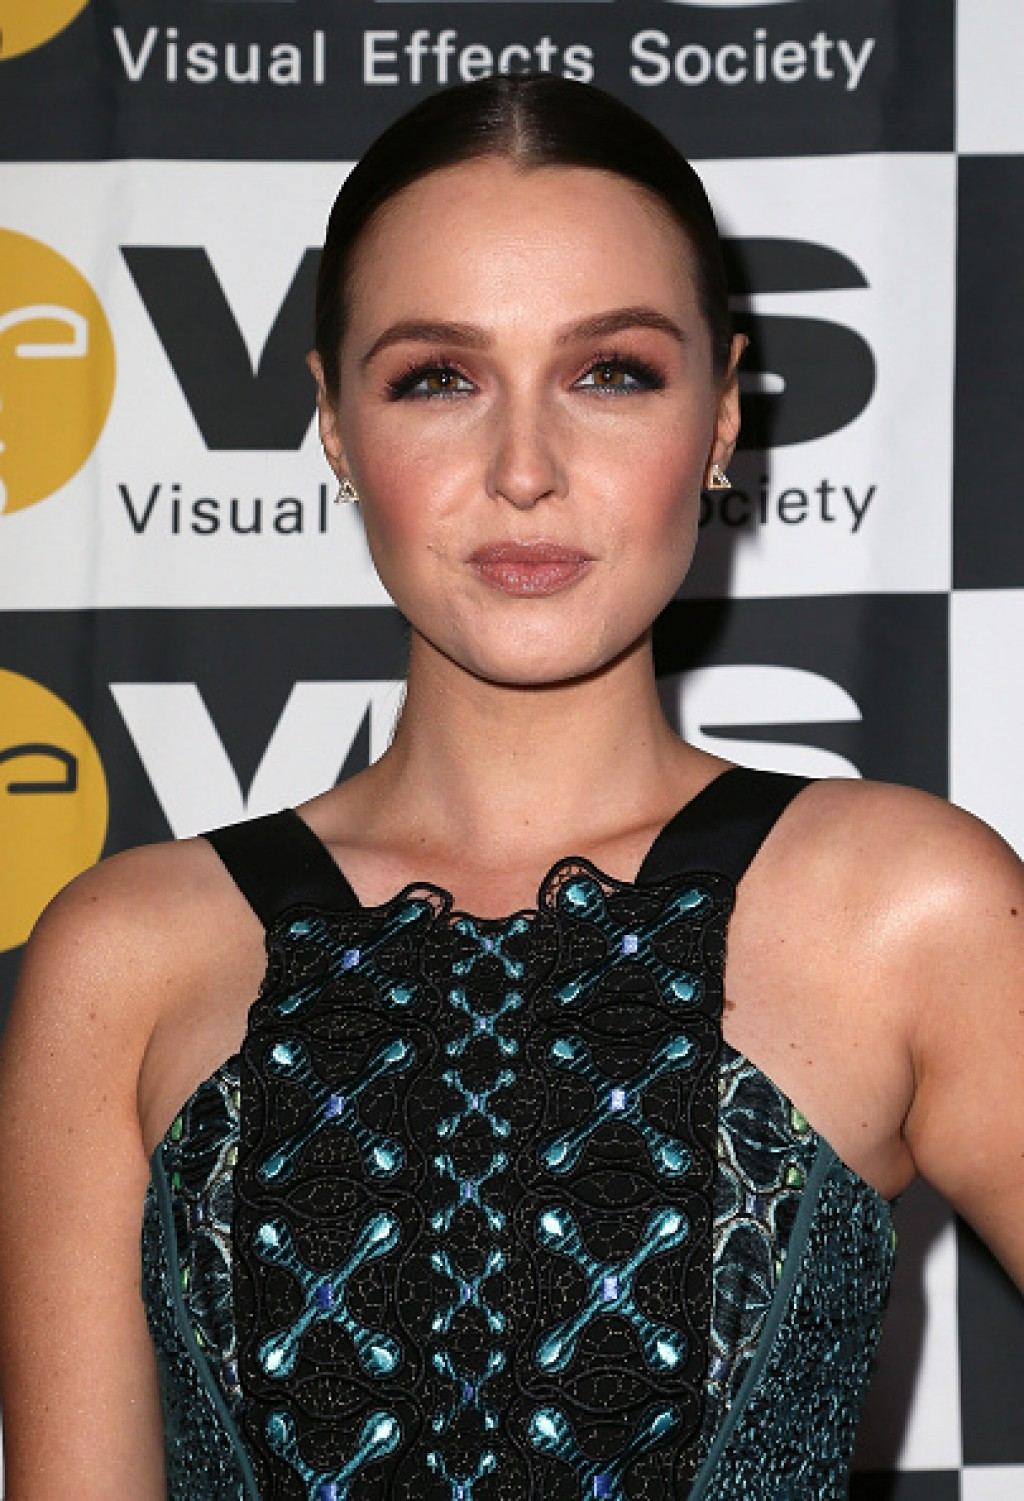 2016-VES-Awards-Camilla-Luddington-Face-1024x1501